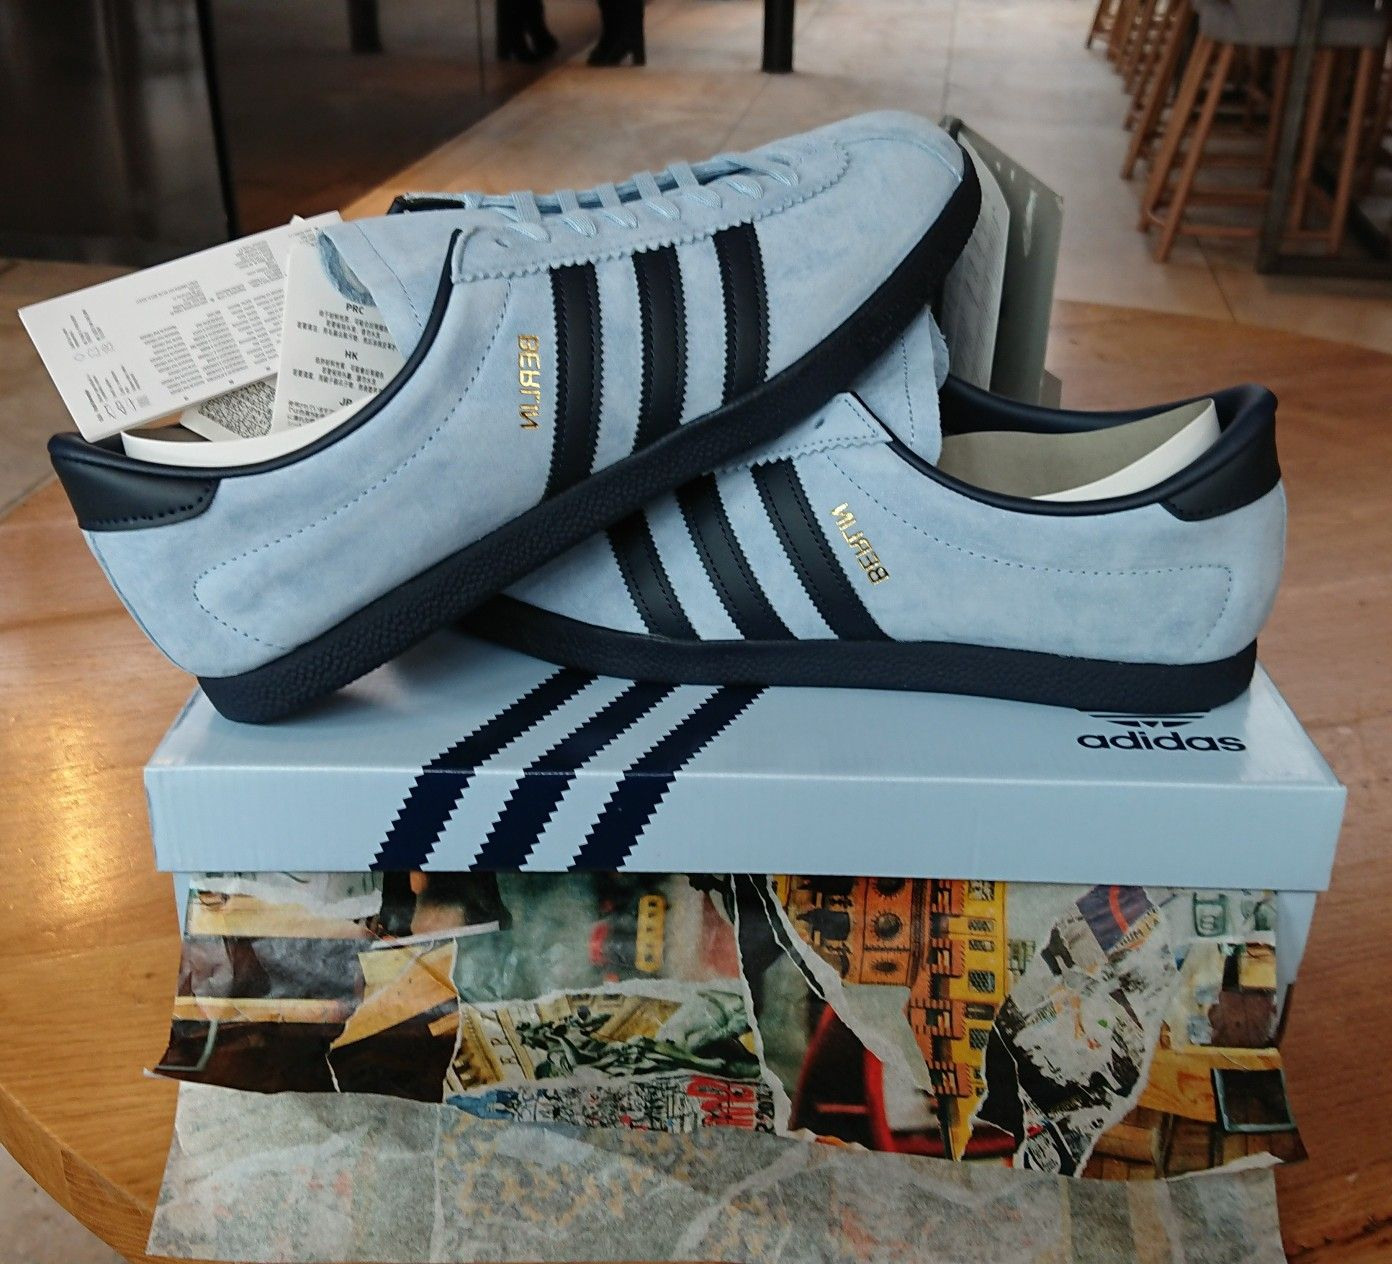 Berlin reverse colourway (sky blue and collegiate navy